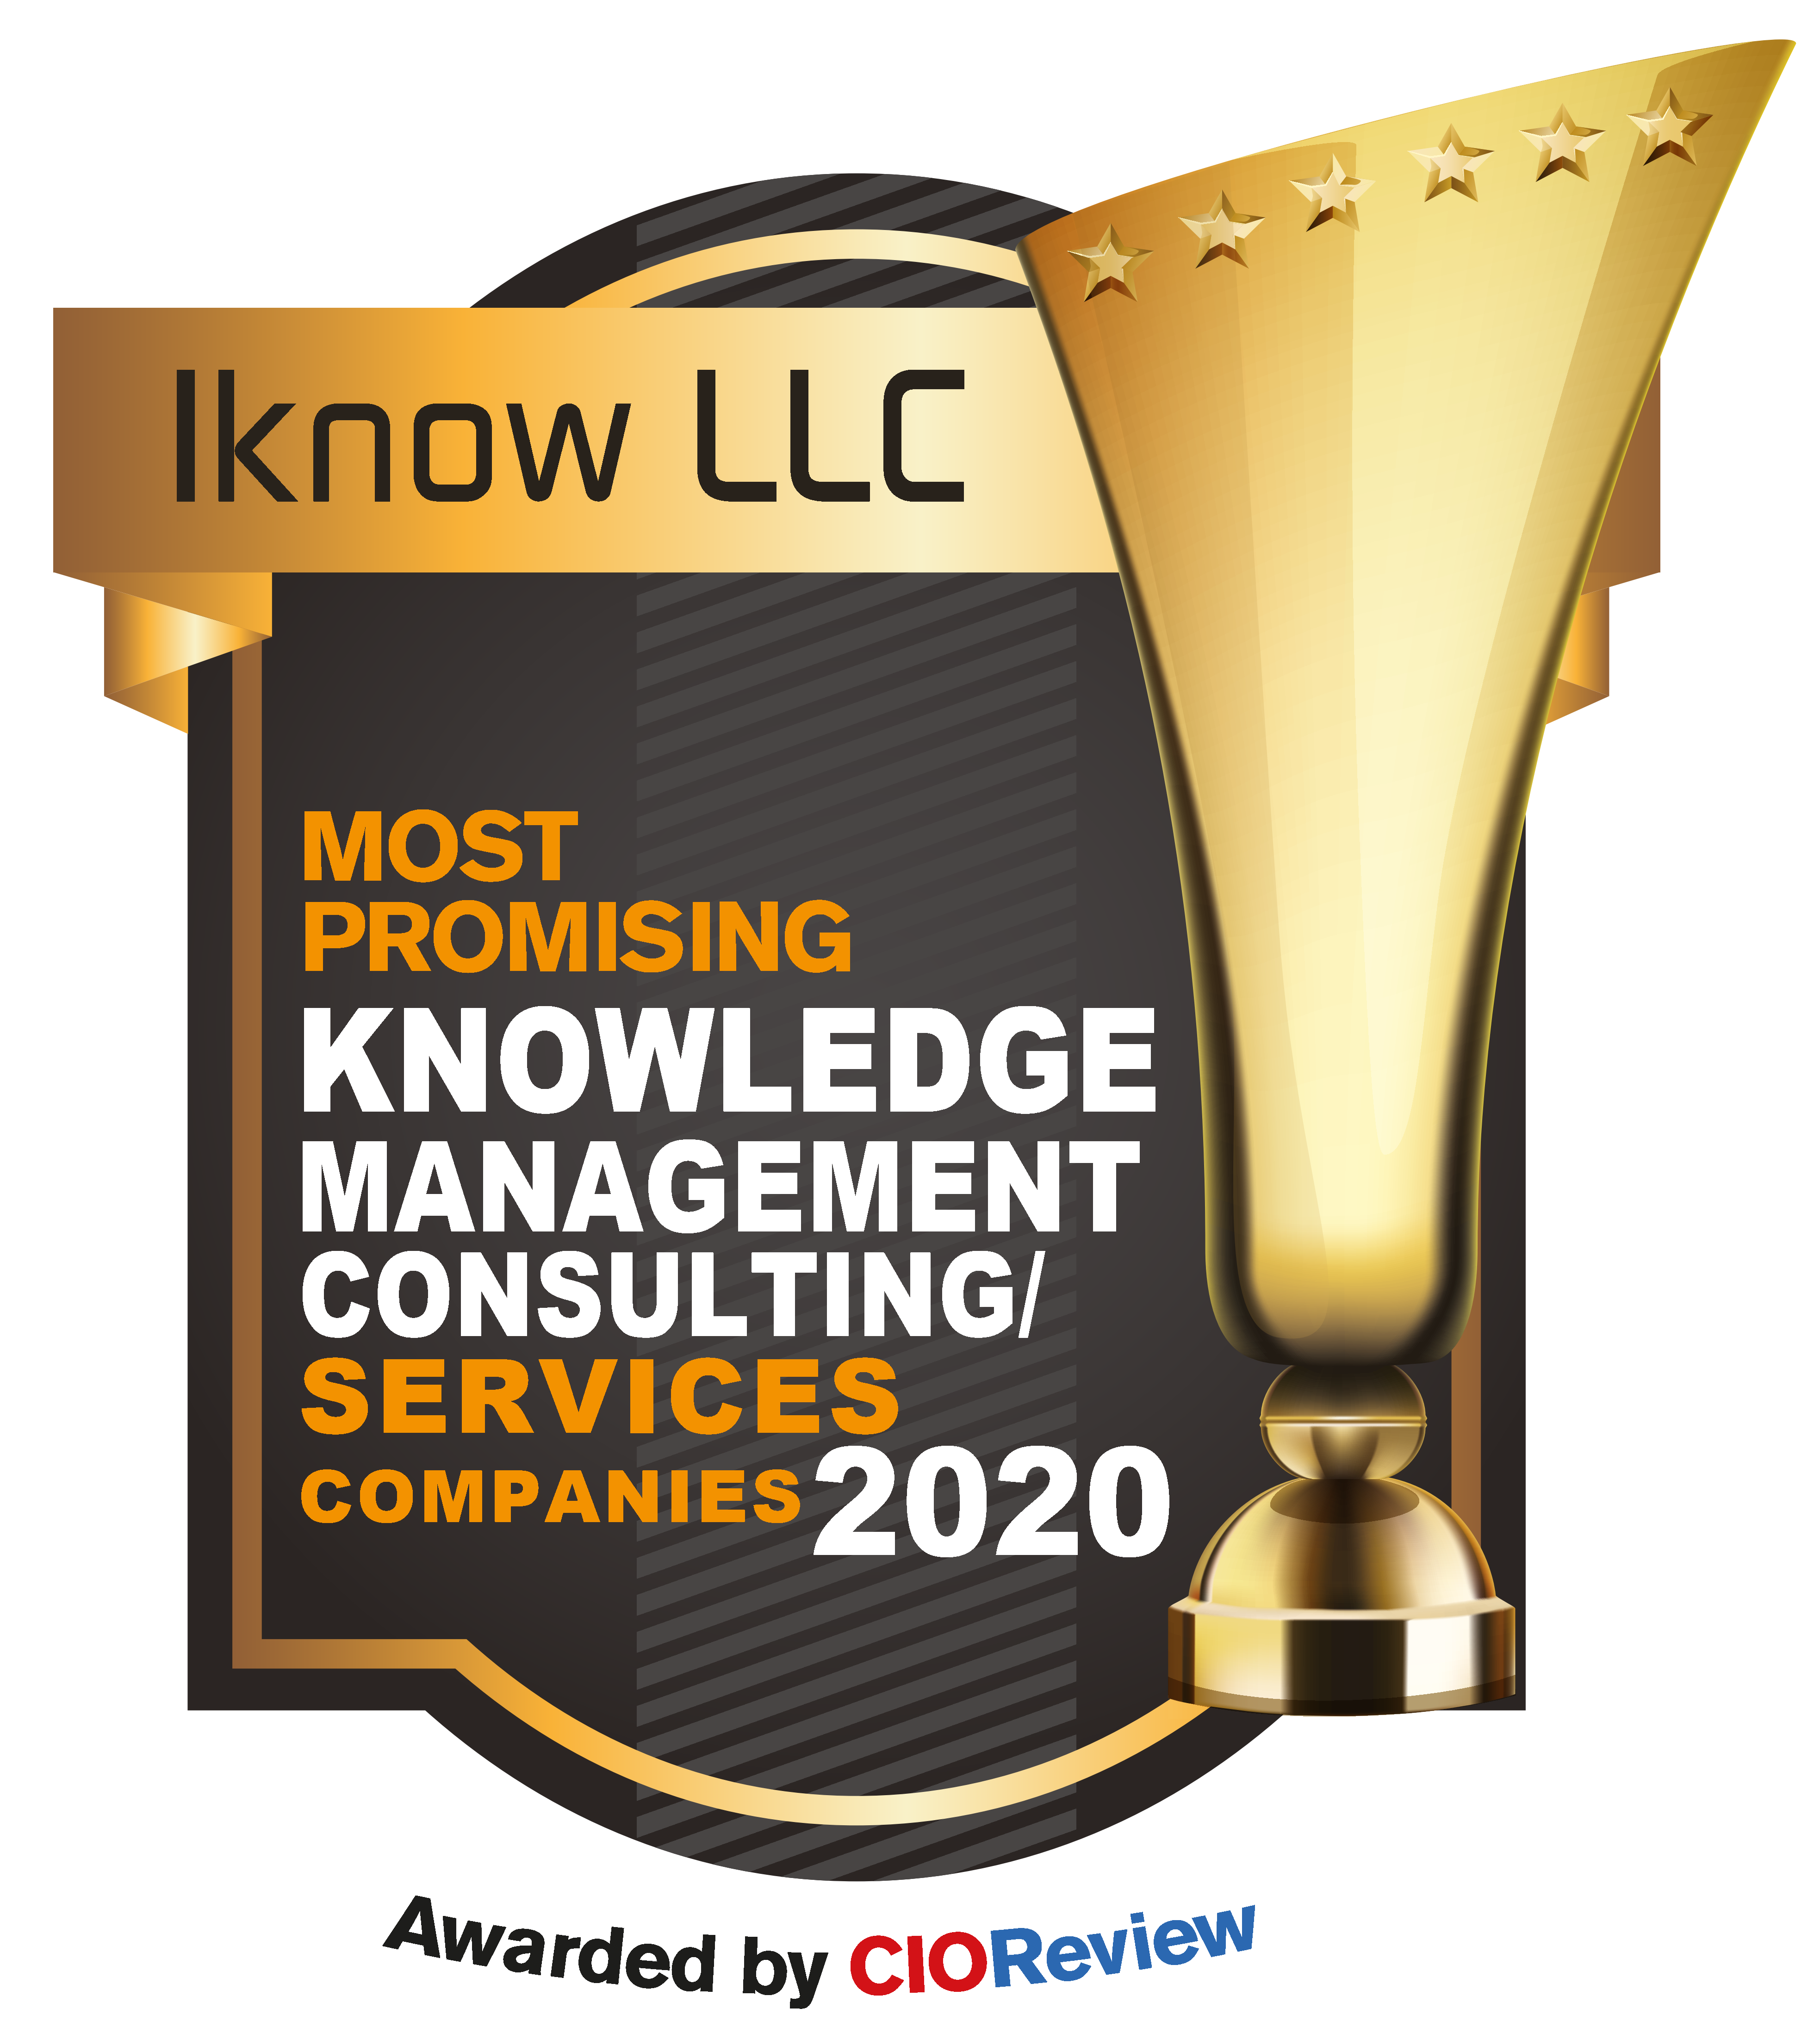 CIO Review Award Logo for Iknow LLC